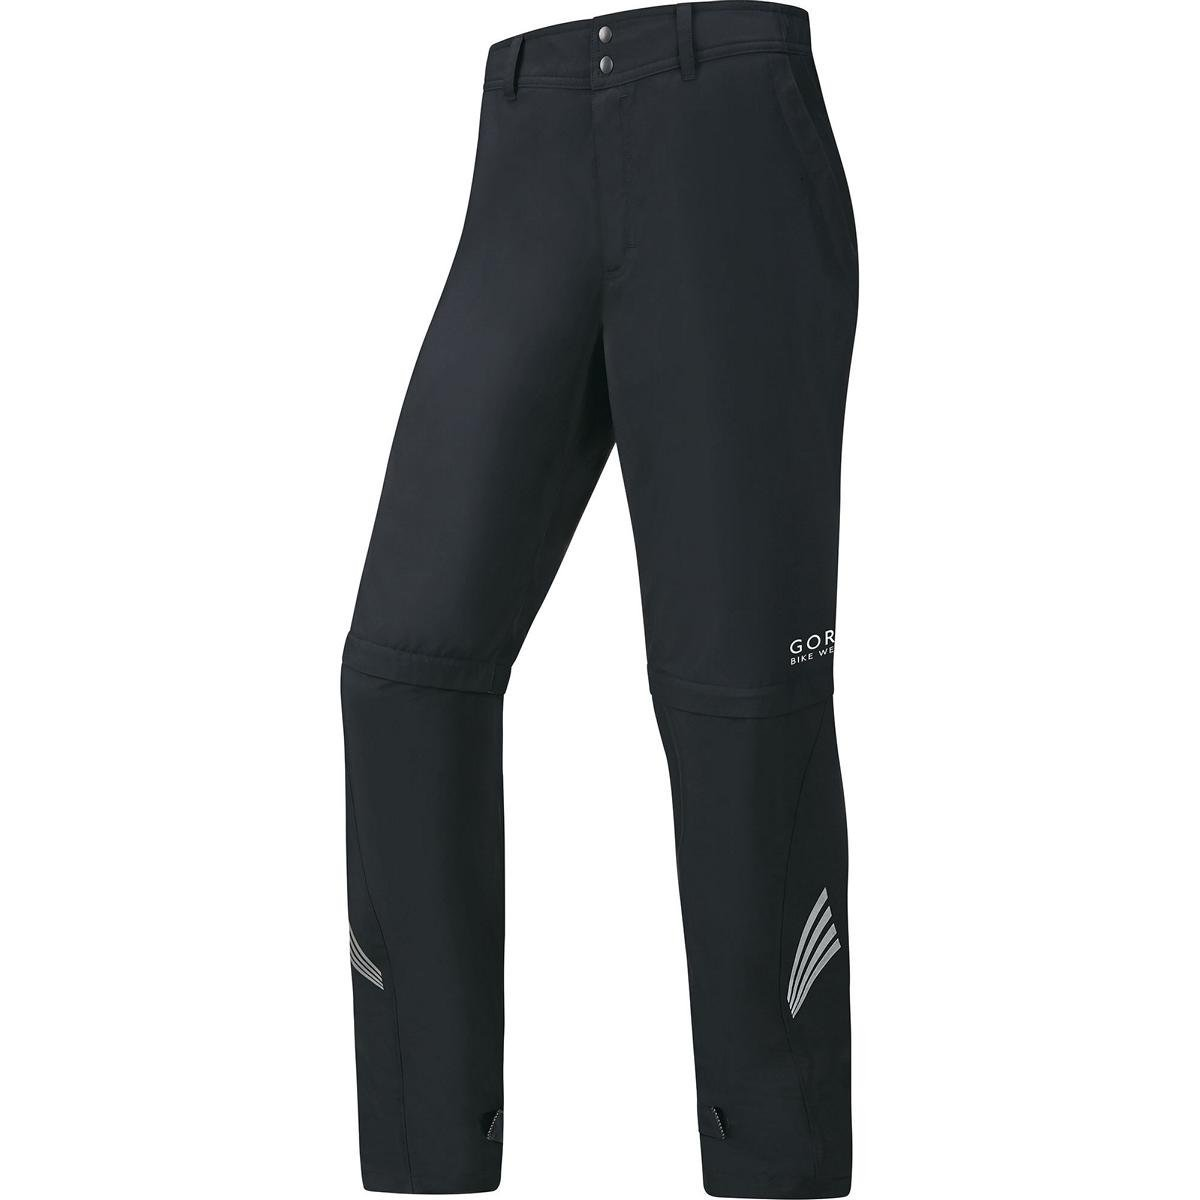 Gore Bike Wear 2 in 1 Herren Lange Regen-Überzieh-Fahrradhose, Gore Windstopper, WS As Zip-Off Pants, PWZELE